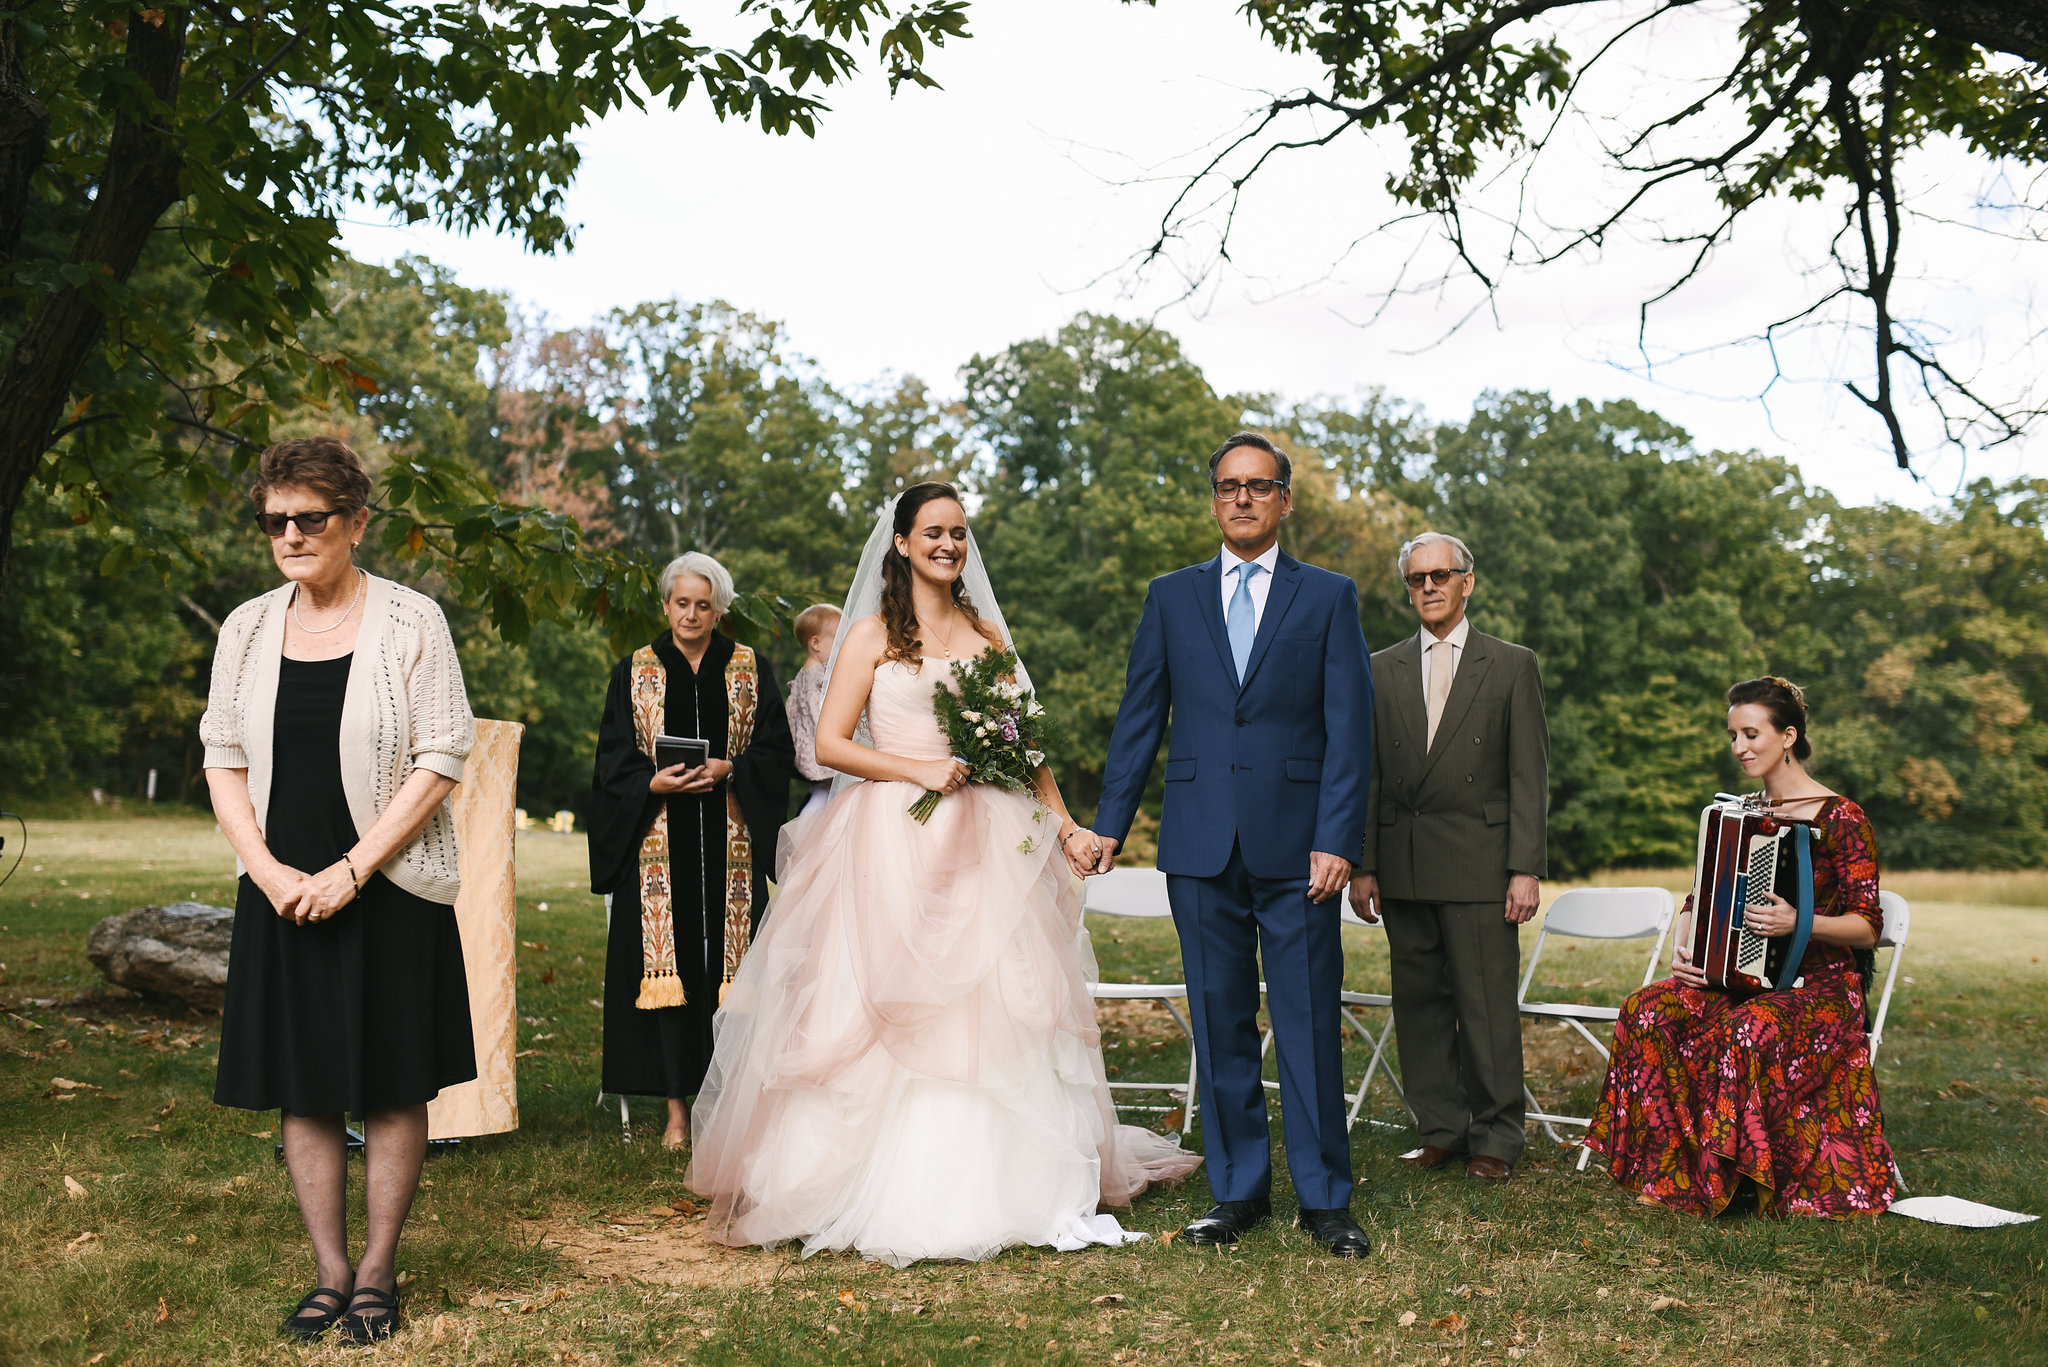 Vintage, DIY, Rustic, Germantown, Maryland Wedding Photographer, Alternative, Casual, Outdoor Wedding, Whimsical, Campground, Blush Wedding Dress, Ceremony Photo, Wedding Prayer